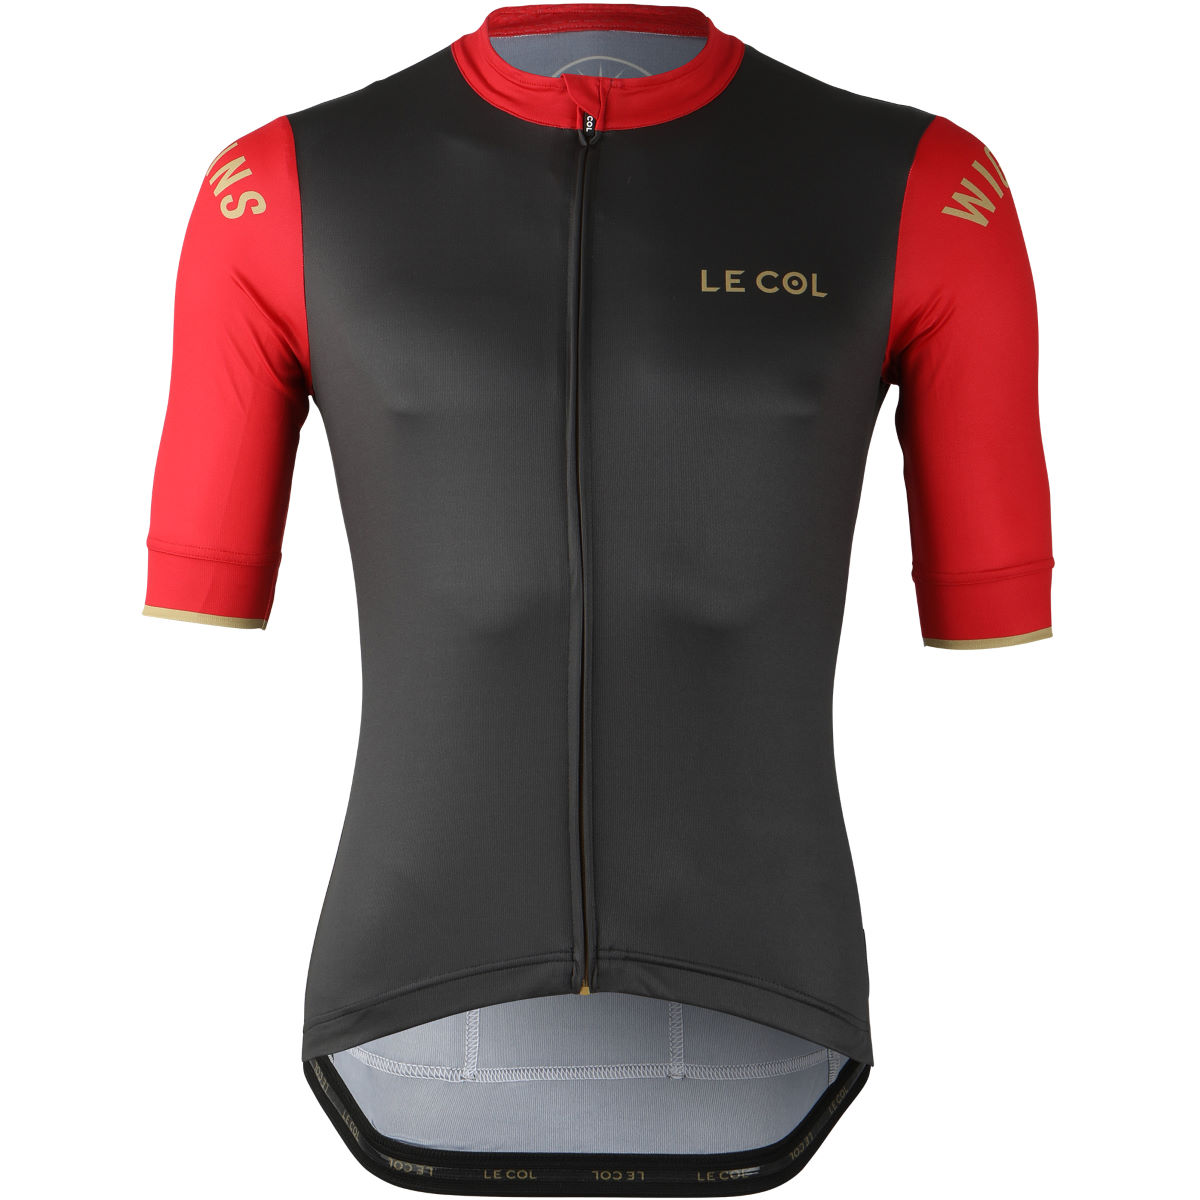 Le Col Le Col By Wiggins Sport Jersey (Ash/Red)   Jerseys